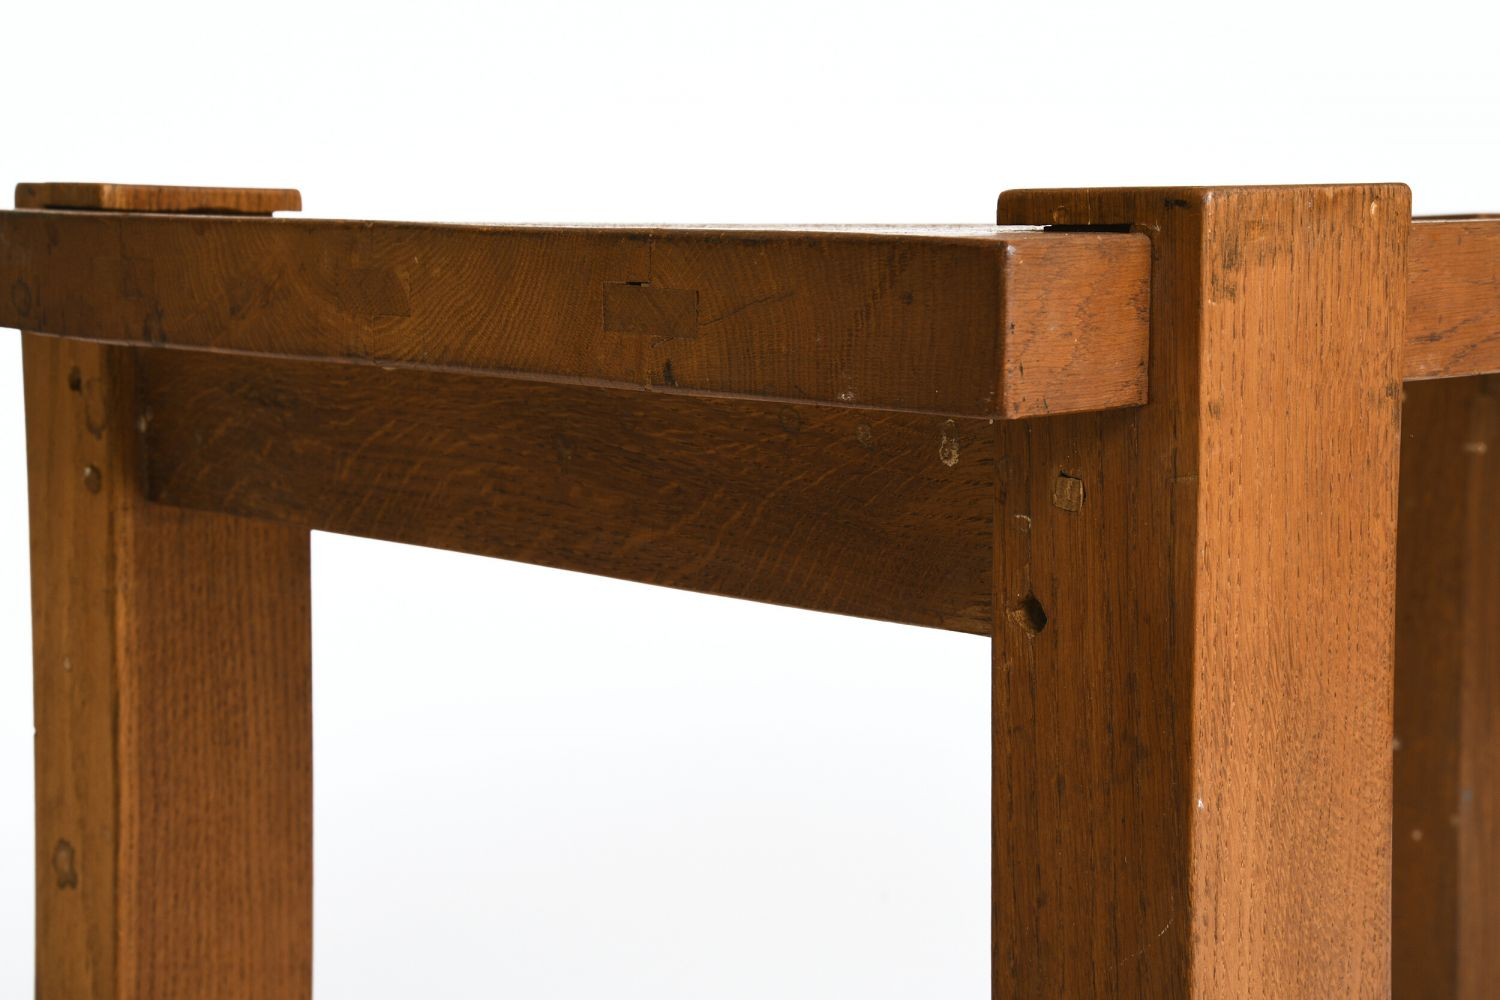 Henry Jacques Le Même's Table/Console, detailed view of side